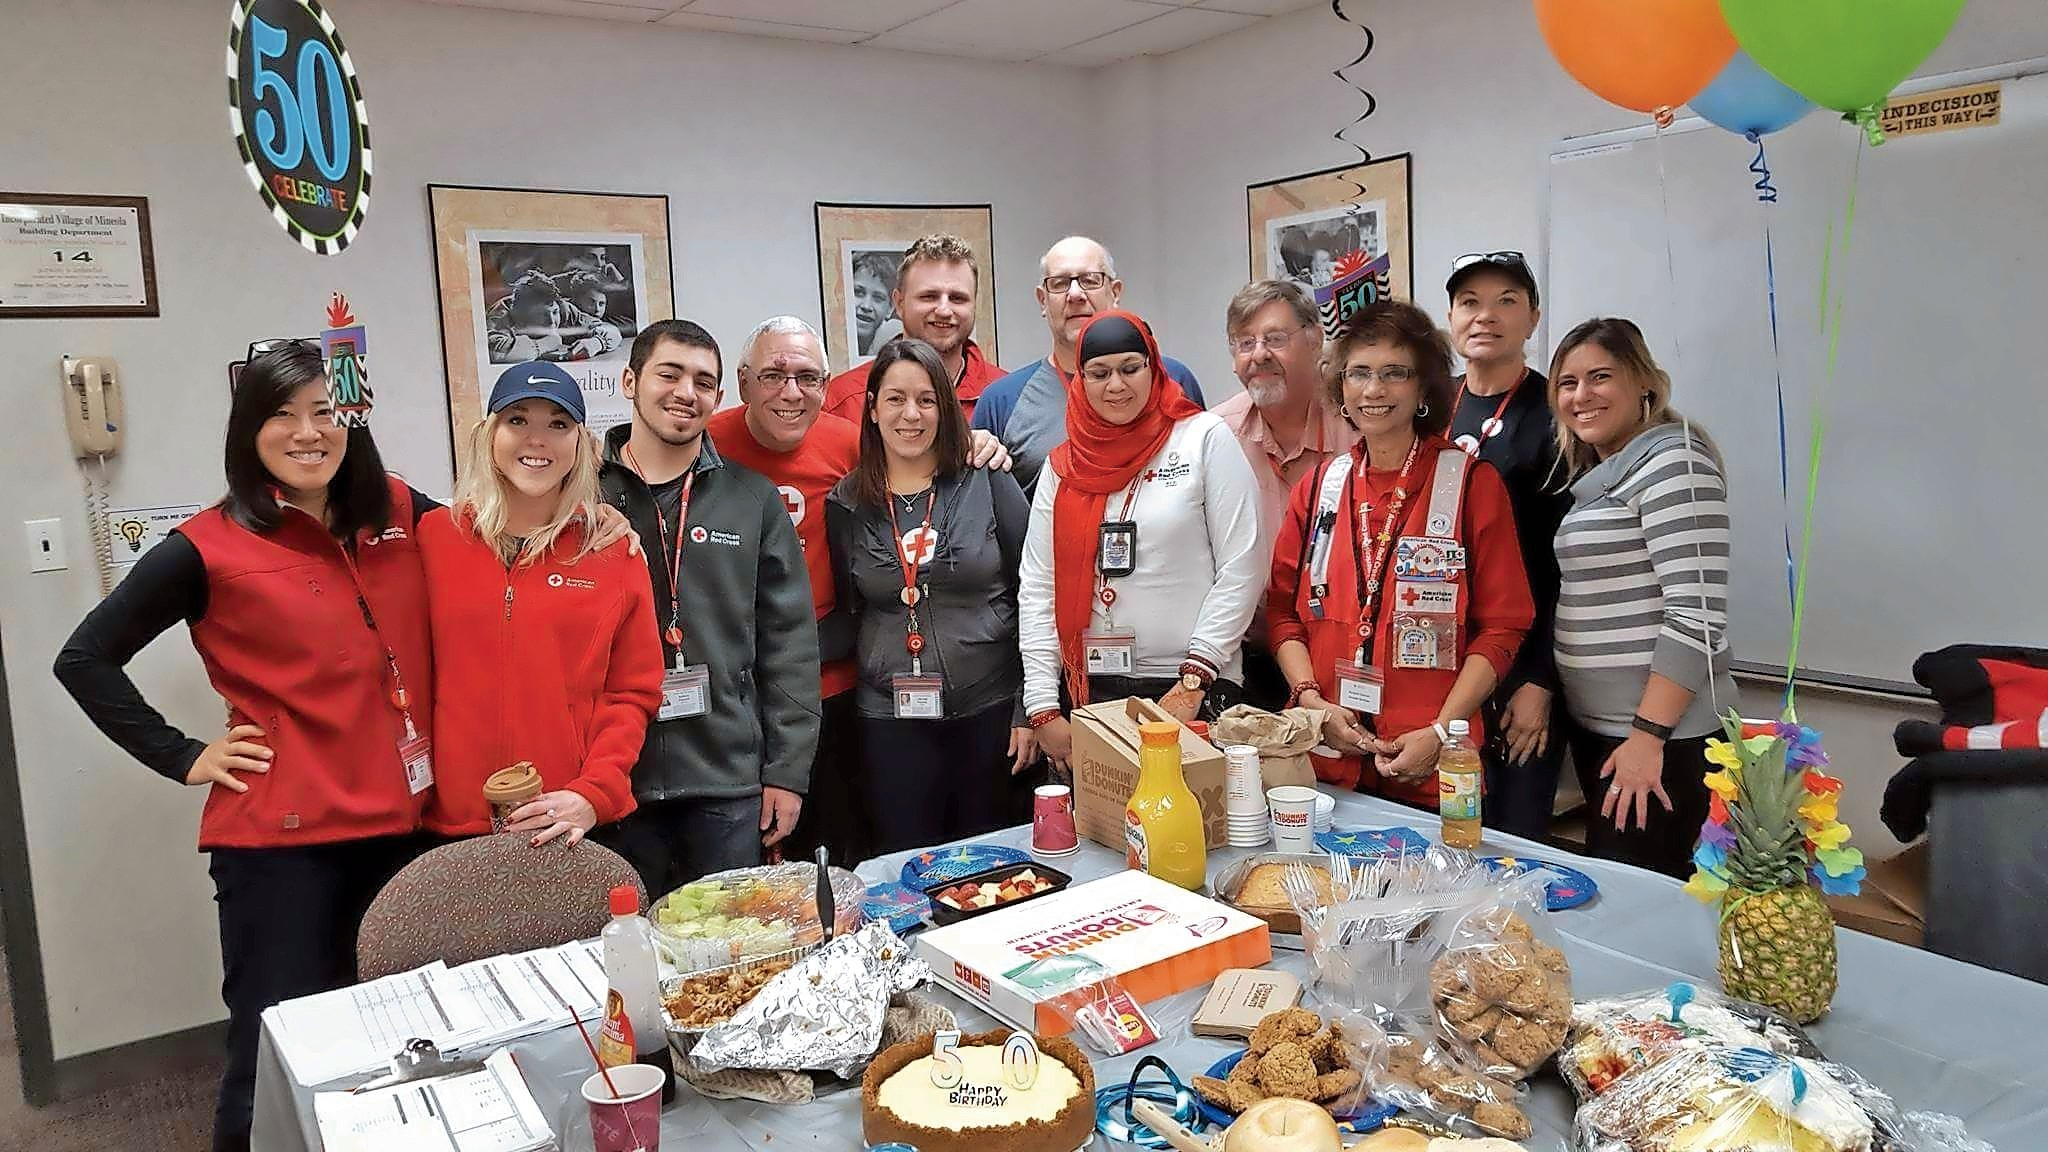 Red Cross volunteers helped Joe Spaccarelli, director of the Home Fire Preparedness Program, celebrate his 50th birthday before heading out to install smoke detectors for those that need them.